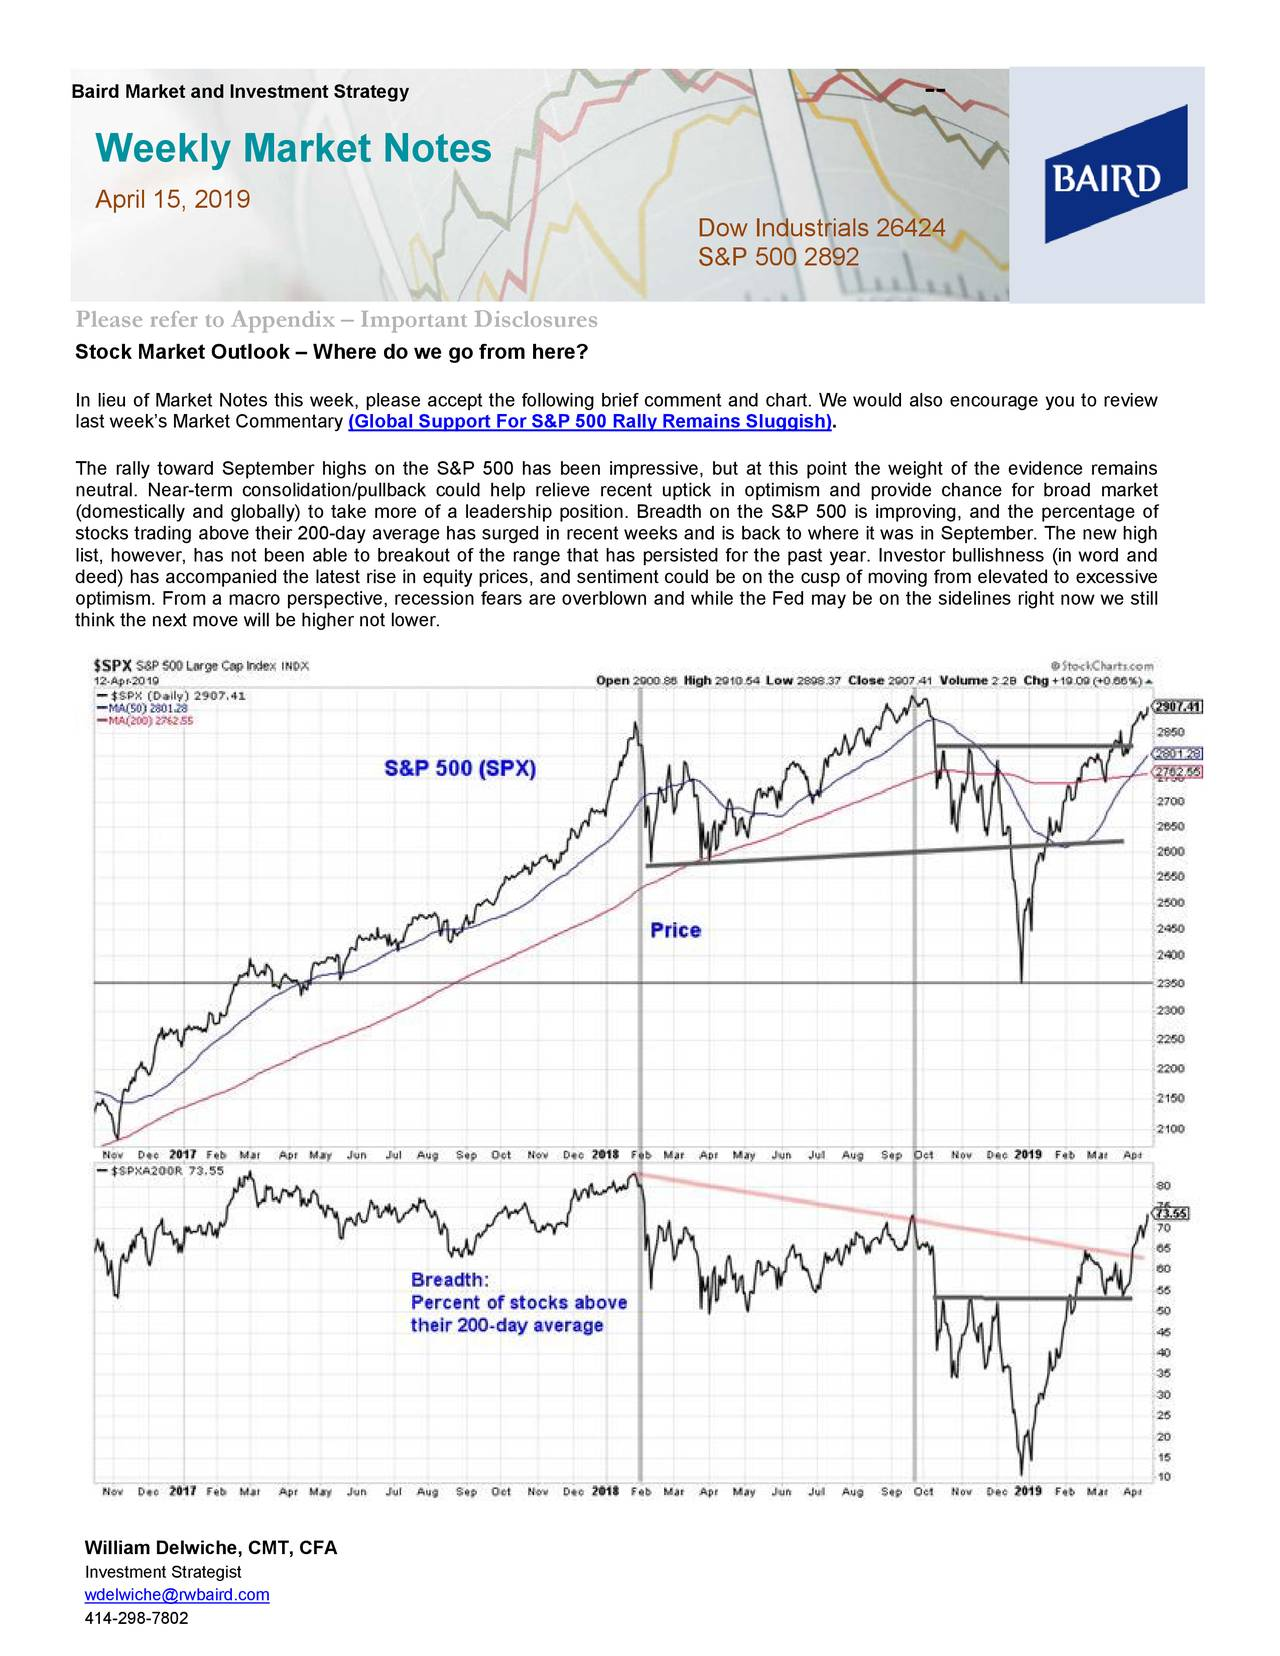 Weekly Market Notes April 15, 2019 Dow Industrials 26424 S&P 500 2892 Please refer to Appendix – Important Disclosures Stock Market Outlook – Where do we go from here? In lieu of Market Notes this week, please accept the following brief comment and chart. We would also encourage you to review last week's Market Commentary (Global Support For S&P 500 Rally Remains Sluggish). The rally toward September highs on the S& P 500 has been impressive, but at this point the weight of the evidence remains neutral. Near -term consolidation/pullback could help relieve recent uptick in optimism and provide chance for broad market (domestically and globally) to take more of a leaders hip position. Breadth on the S&P 500 is improving, and the percentage of stocks trading above their 200 -day average has surged in recent weeks and is back to where it was in September. The new high list, however, has not been able to breakout of the range that has persisted for the past year. Investor bullishness (in word and deed) has accompanied the latest rise in equity prices, and sentiment could be on the cusp of moving from elevated to excessi ve optimism. From a macro perspective, recession fears are overblown and while the Fed may be on the sidelines right now we still think the next move will be higher not lower. William Delwiche, CMT, CFA Investment Strategist wdelwiche@rwbaird.com 414-298-7802